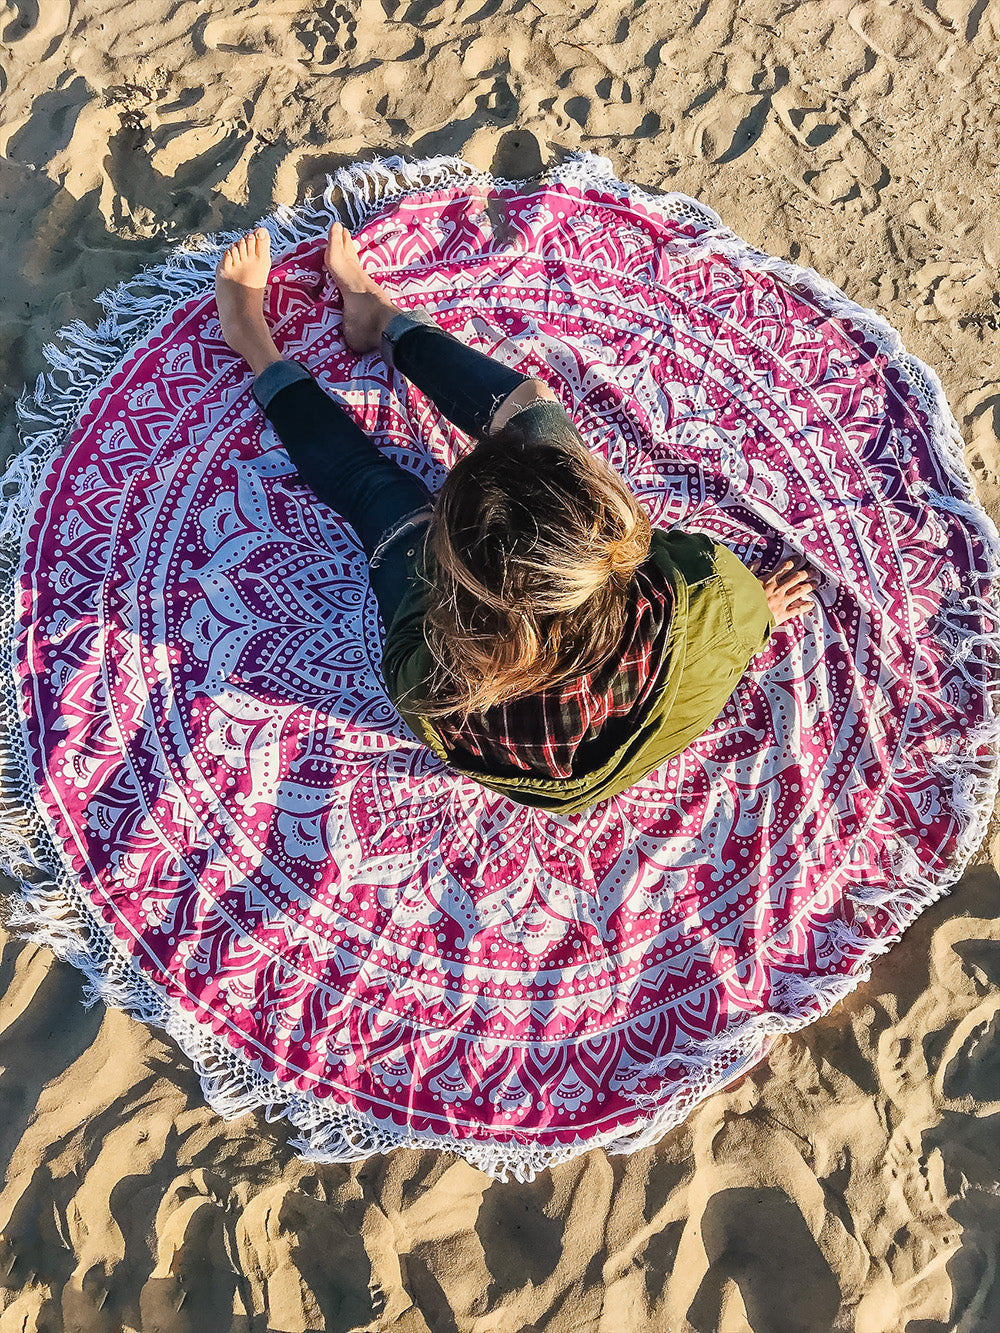 Step up your beach game for summer 2018 with a Boho Roundie. Use your roundie while enjoying the sunshine, around the bonfire, or for a beach mediation session. There's nothing more relaxing than closing your eyes and listening to the calming waves to soothe the soul.